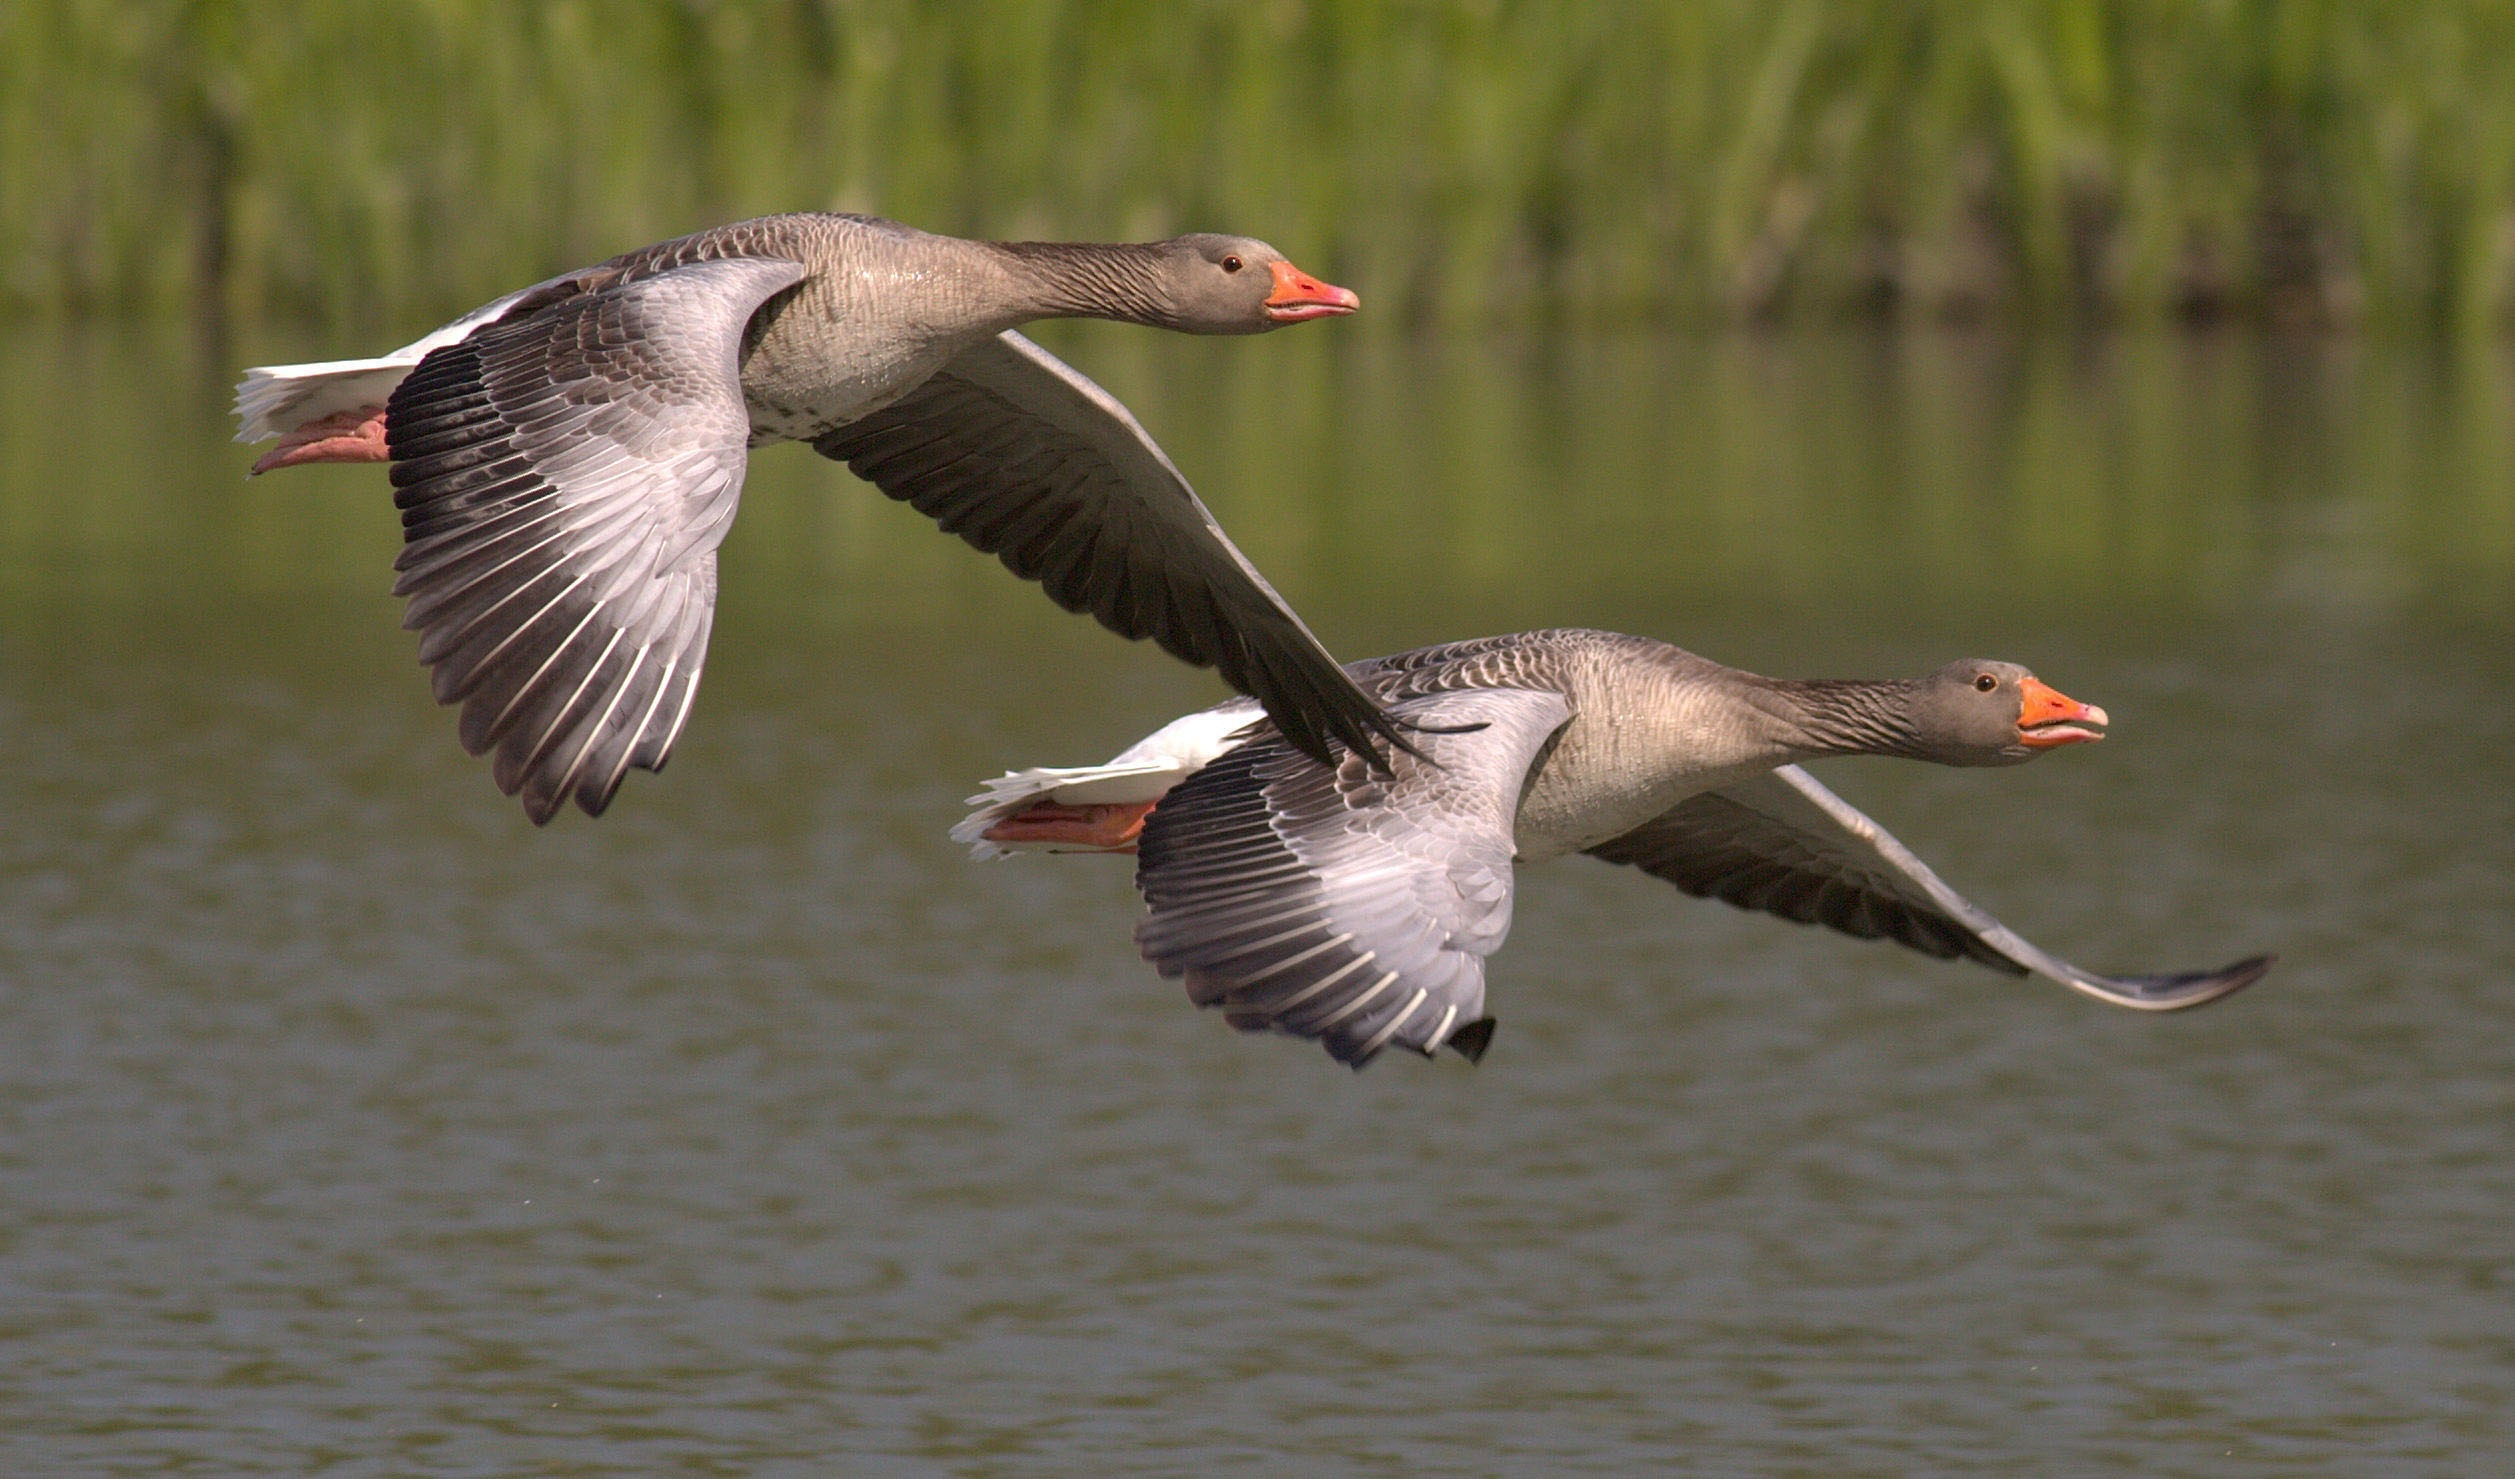 Two Birds in Flight, nature, geese, birds, animals, HQ Photo